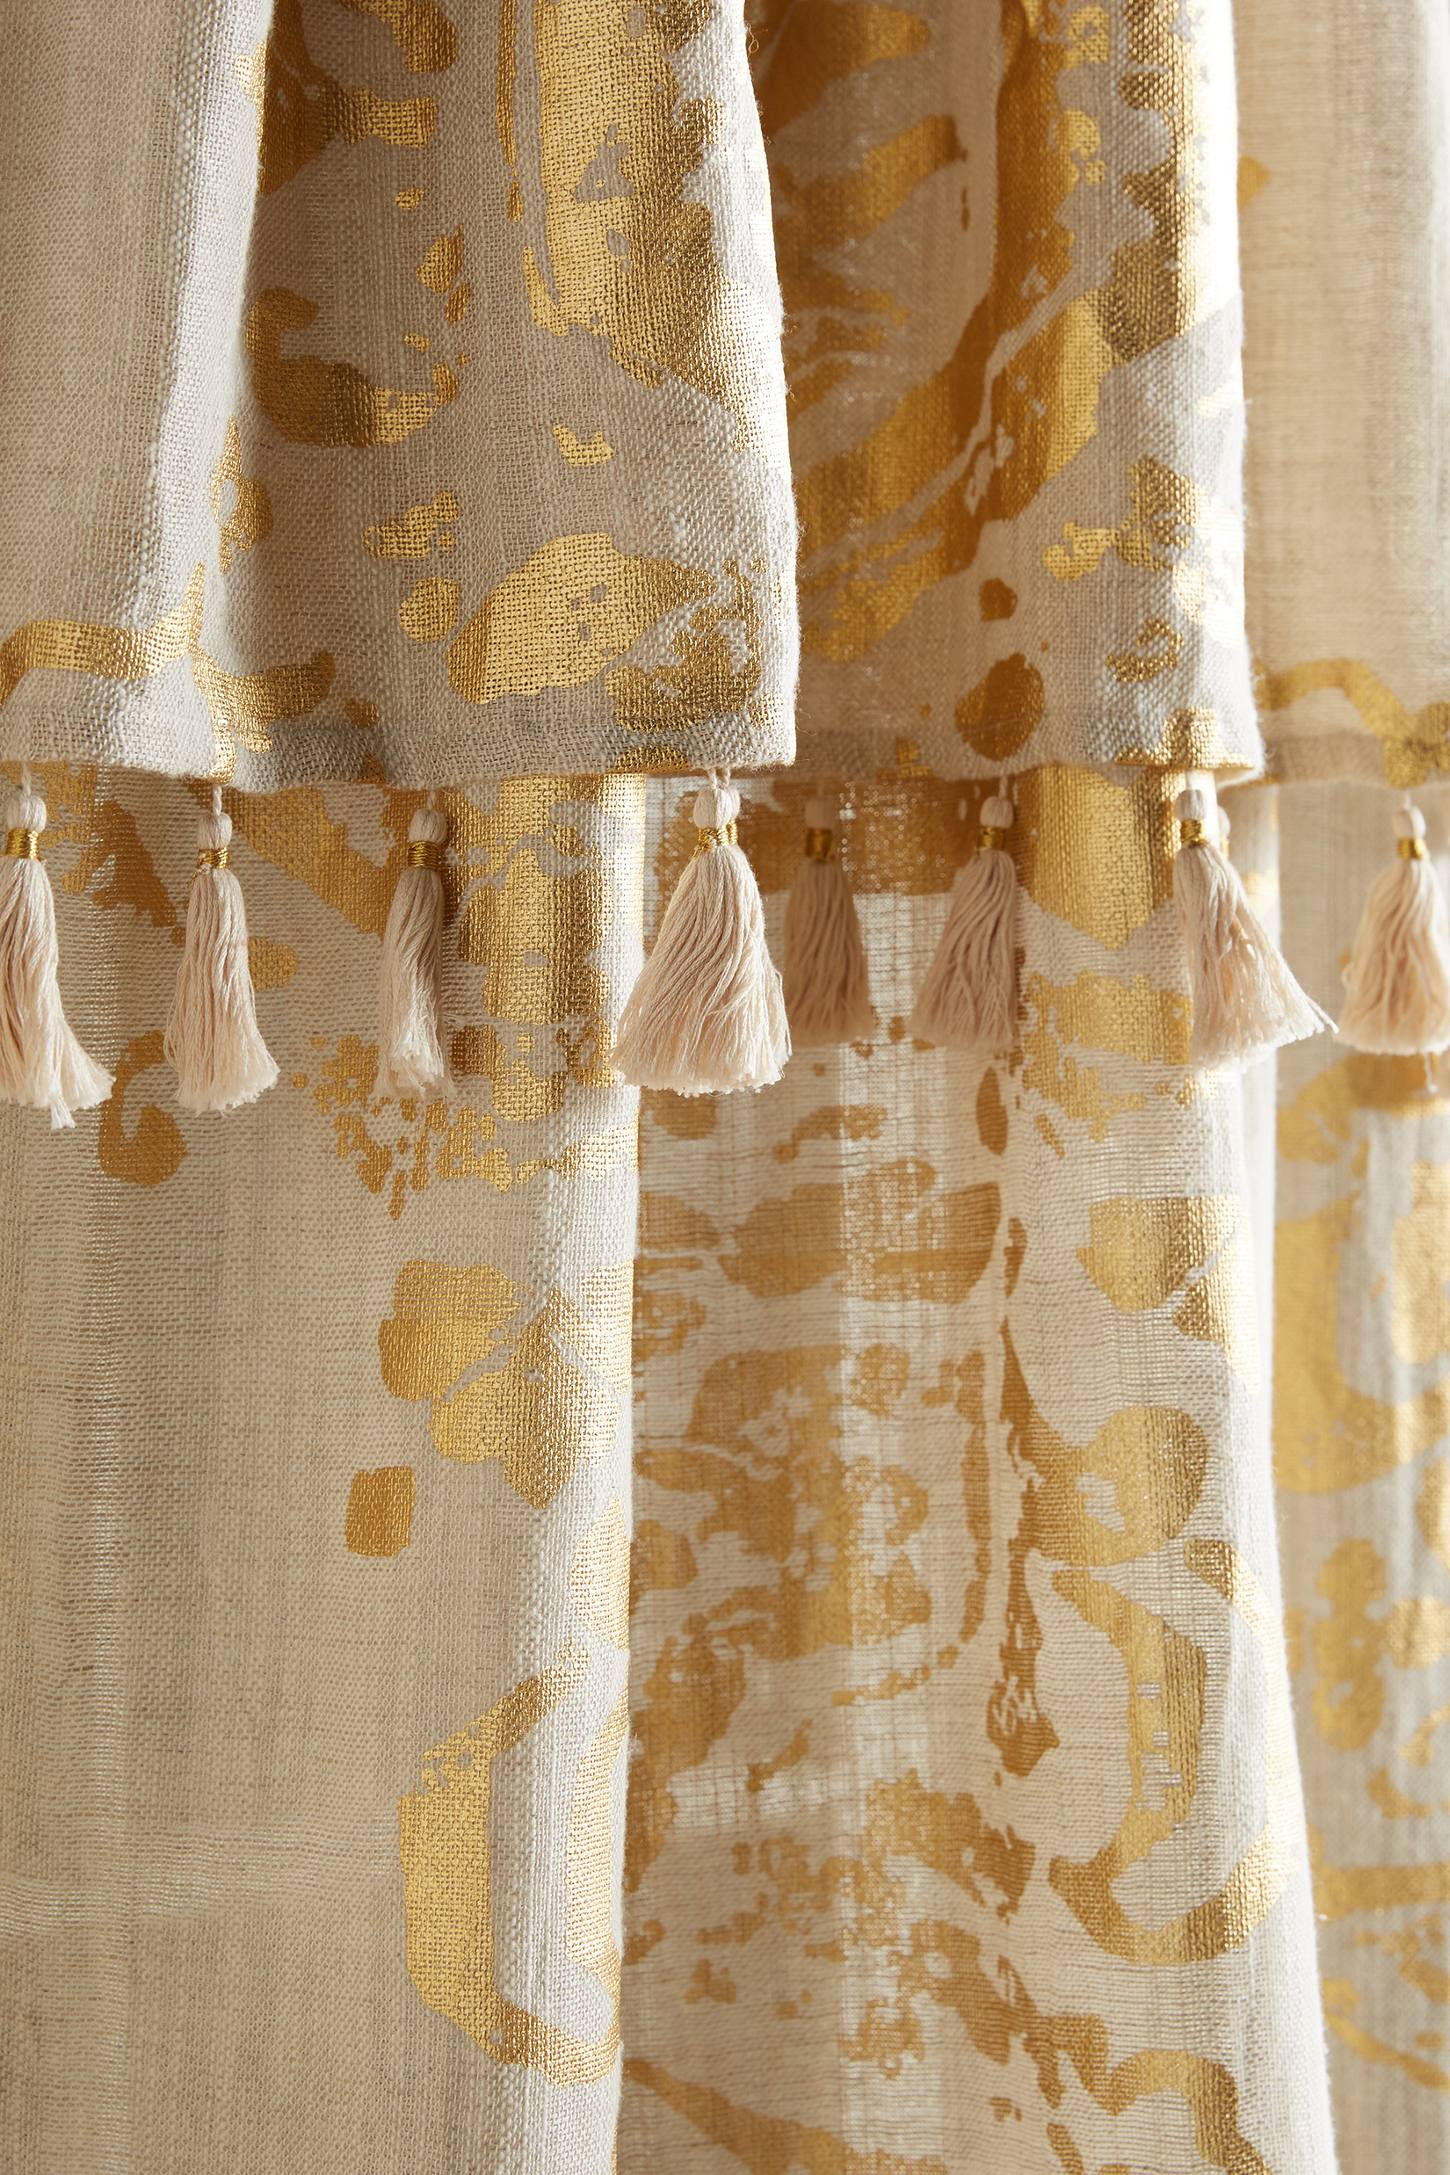 Slide View: 2: Gold Foil Curtain